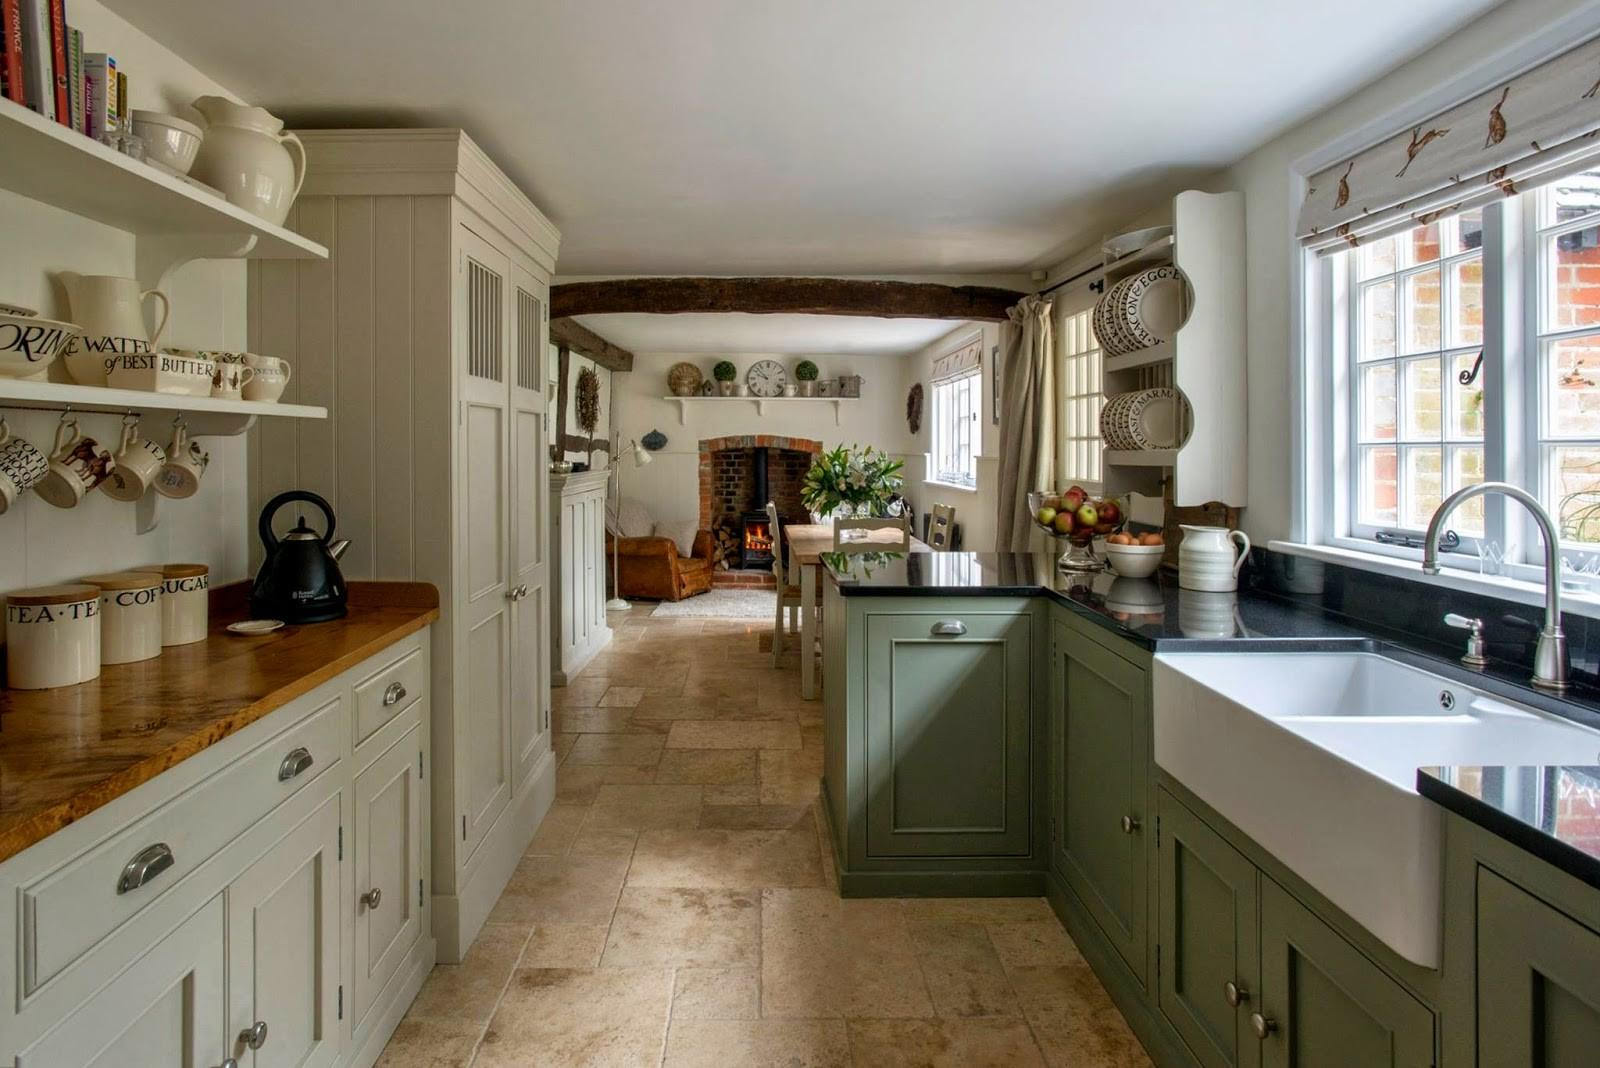 26 Incredibly Modern Country Cottage Kitchen Design That Will Change Your Life For Sure Photo Gallery Decoratorist